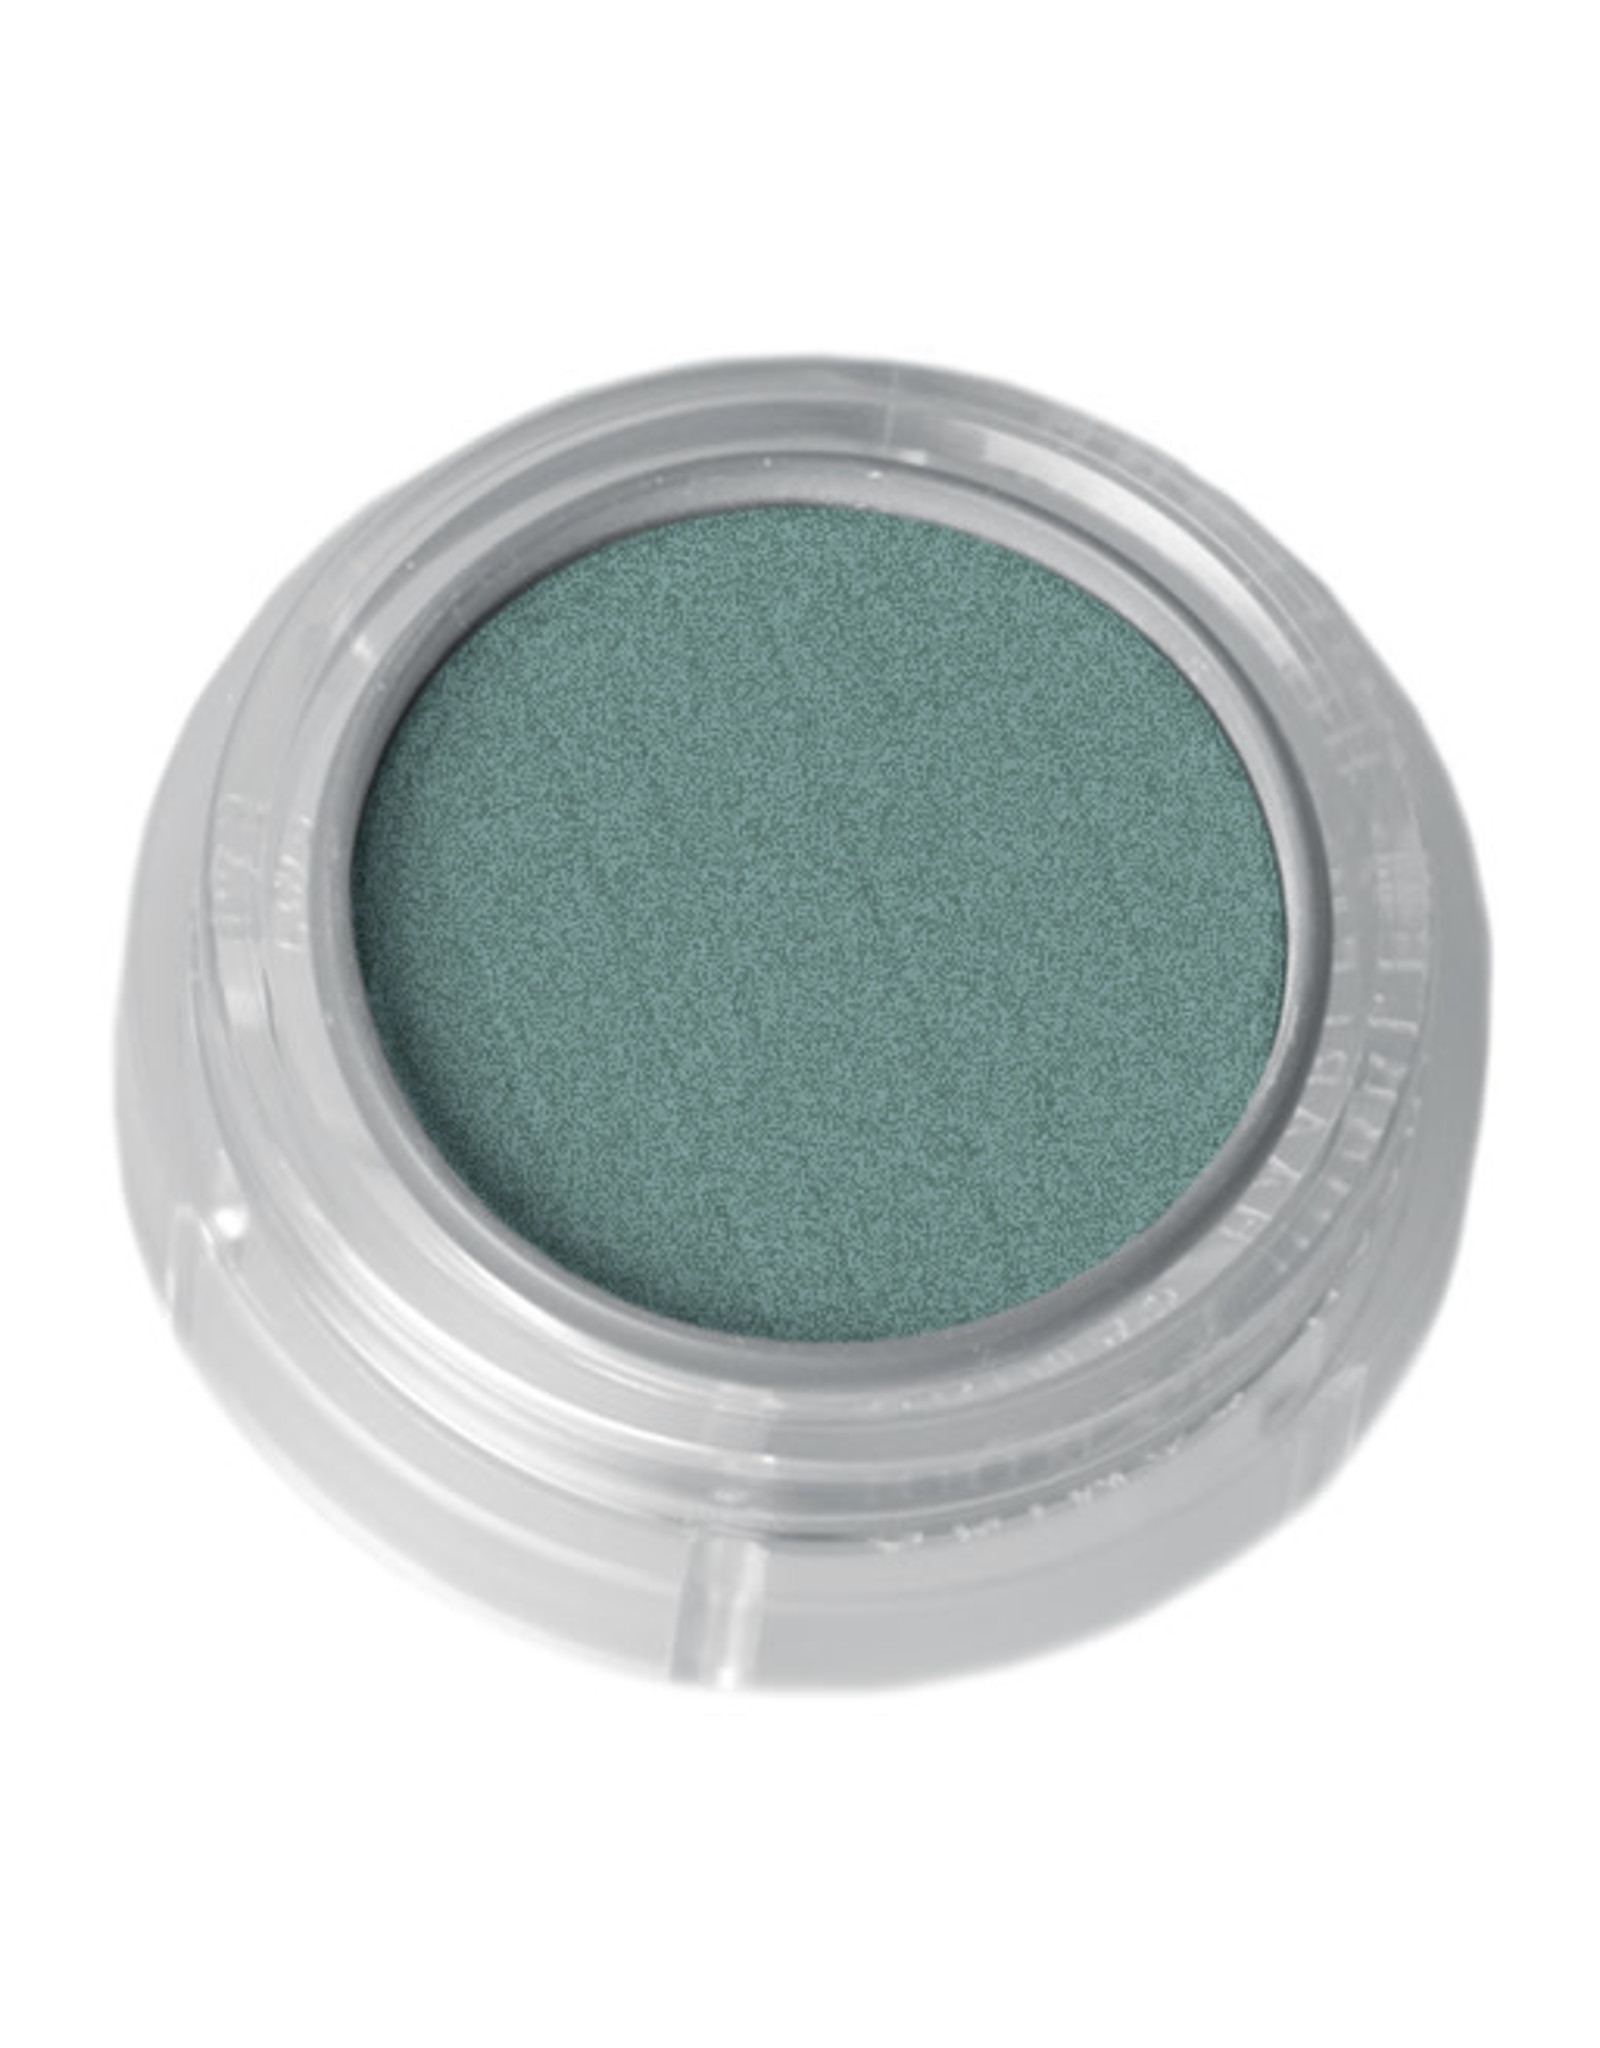 Grimas EYESHADOW/ROUGE PEARL 734 Pearl Turquoise A1 (2,5 g)